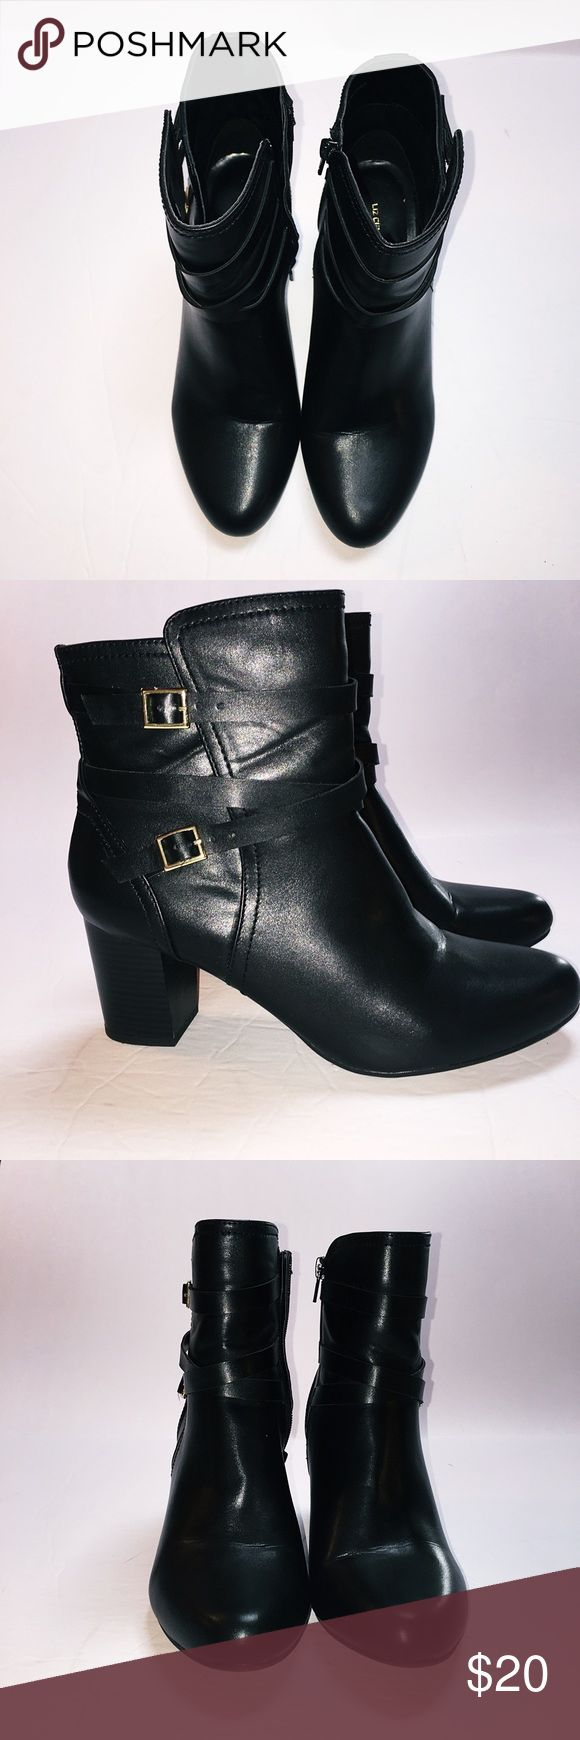 """Liz Claiborne black boots Black side zip boots with gold buckle and straps detail. EUC, worn once. Zippers work normally. 2.5"""" heel. Size 8.5. All man made materials. No box. Smoke free pet friendly home. Offers welcome. Liz Claiborne Shoes Ankle Boots & Booties"""